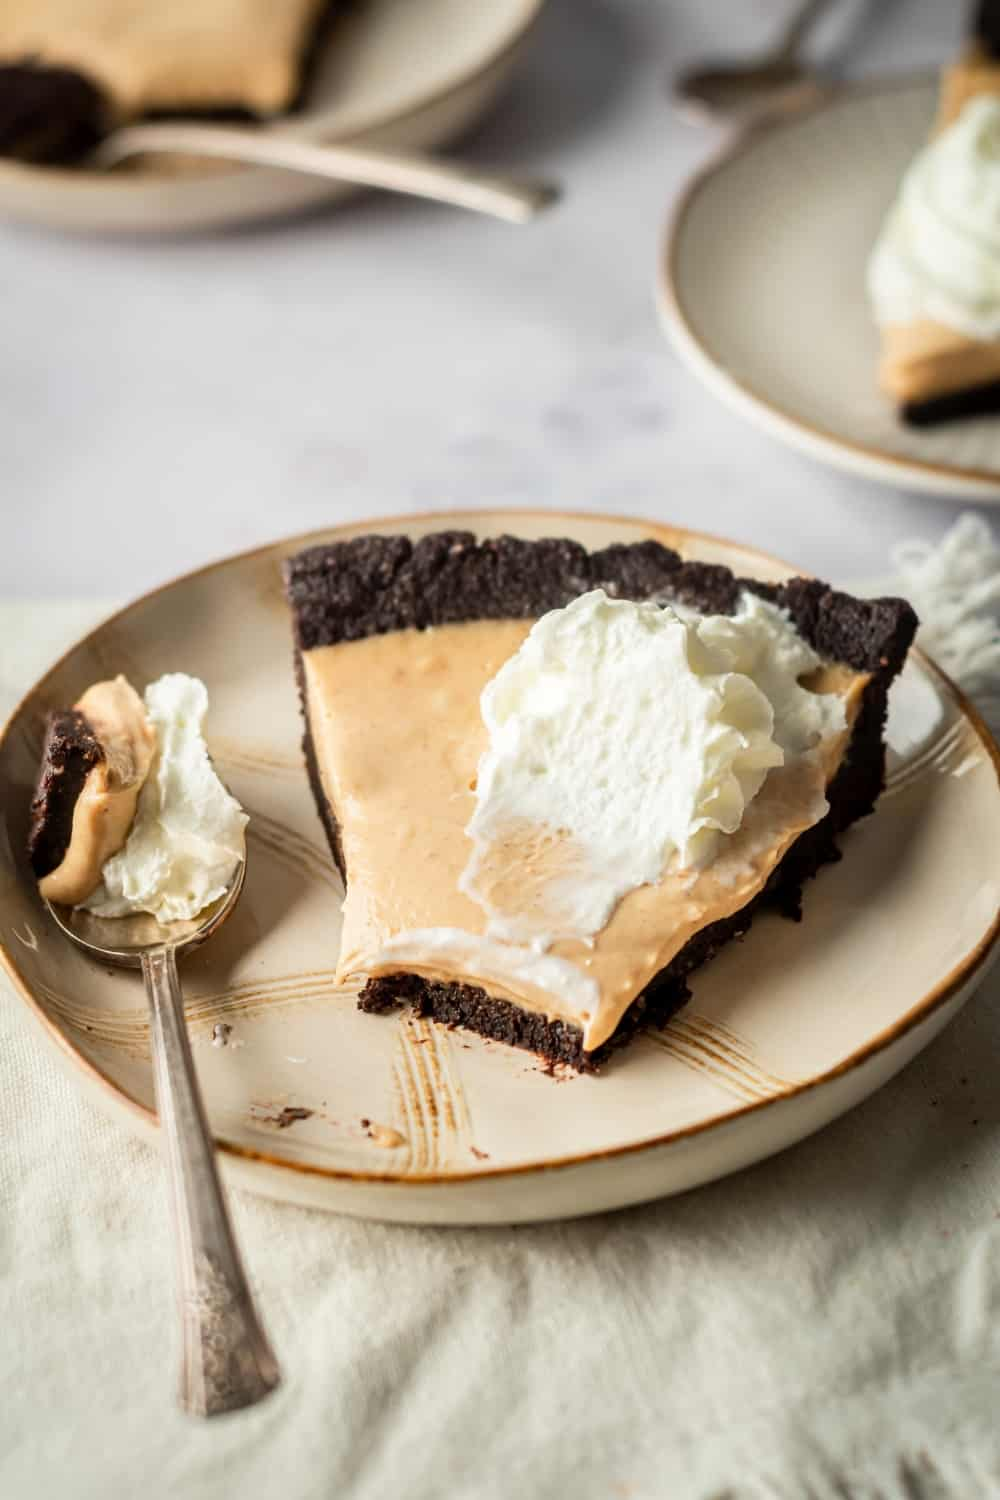 A slice of peanut butter chocolate pie on a white plate. A slice from the front of the pie is on a spoon that is to the left of the pie on the plate.